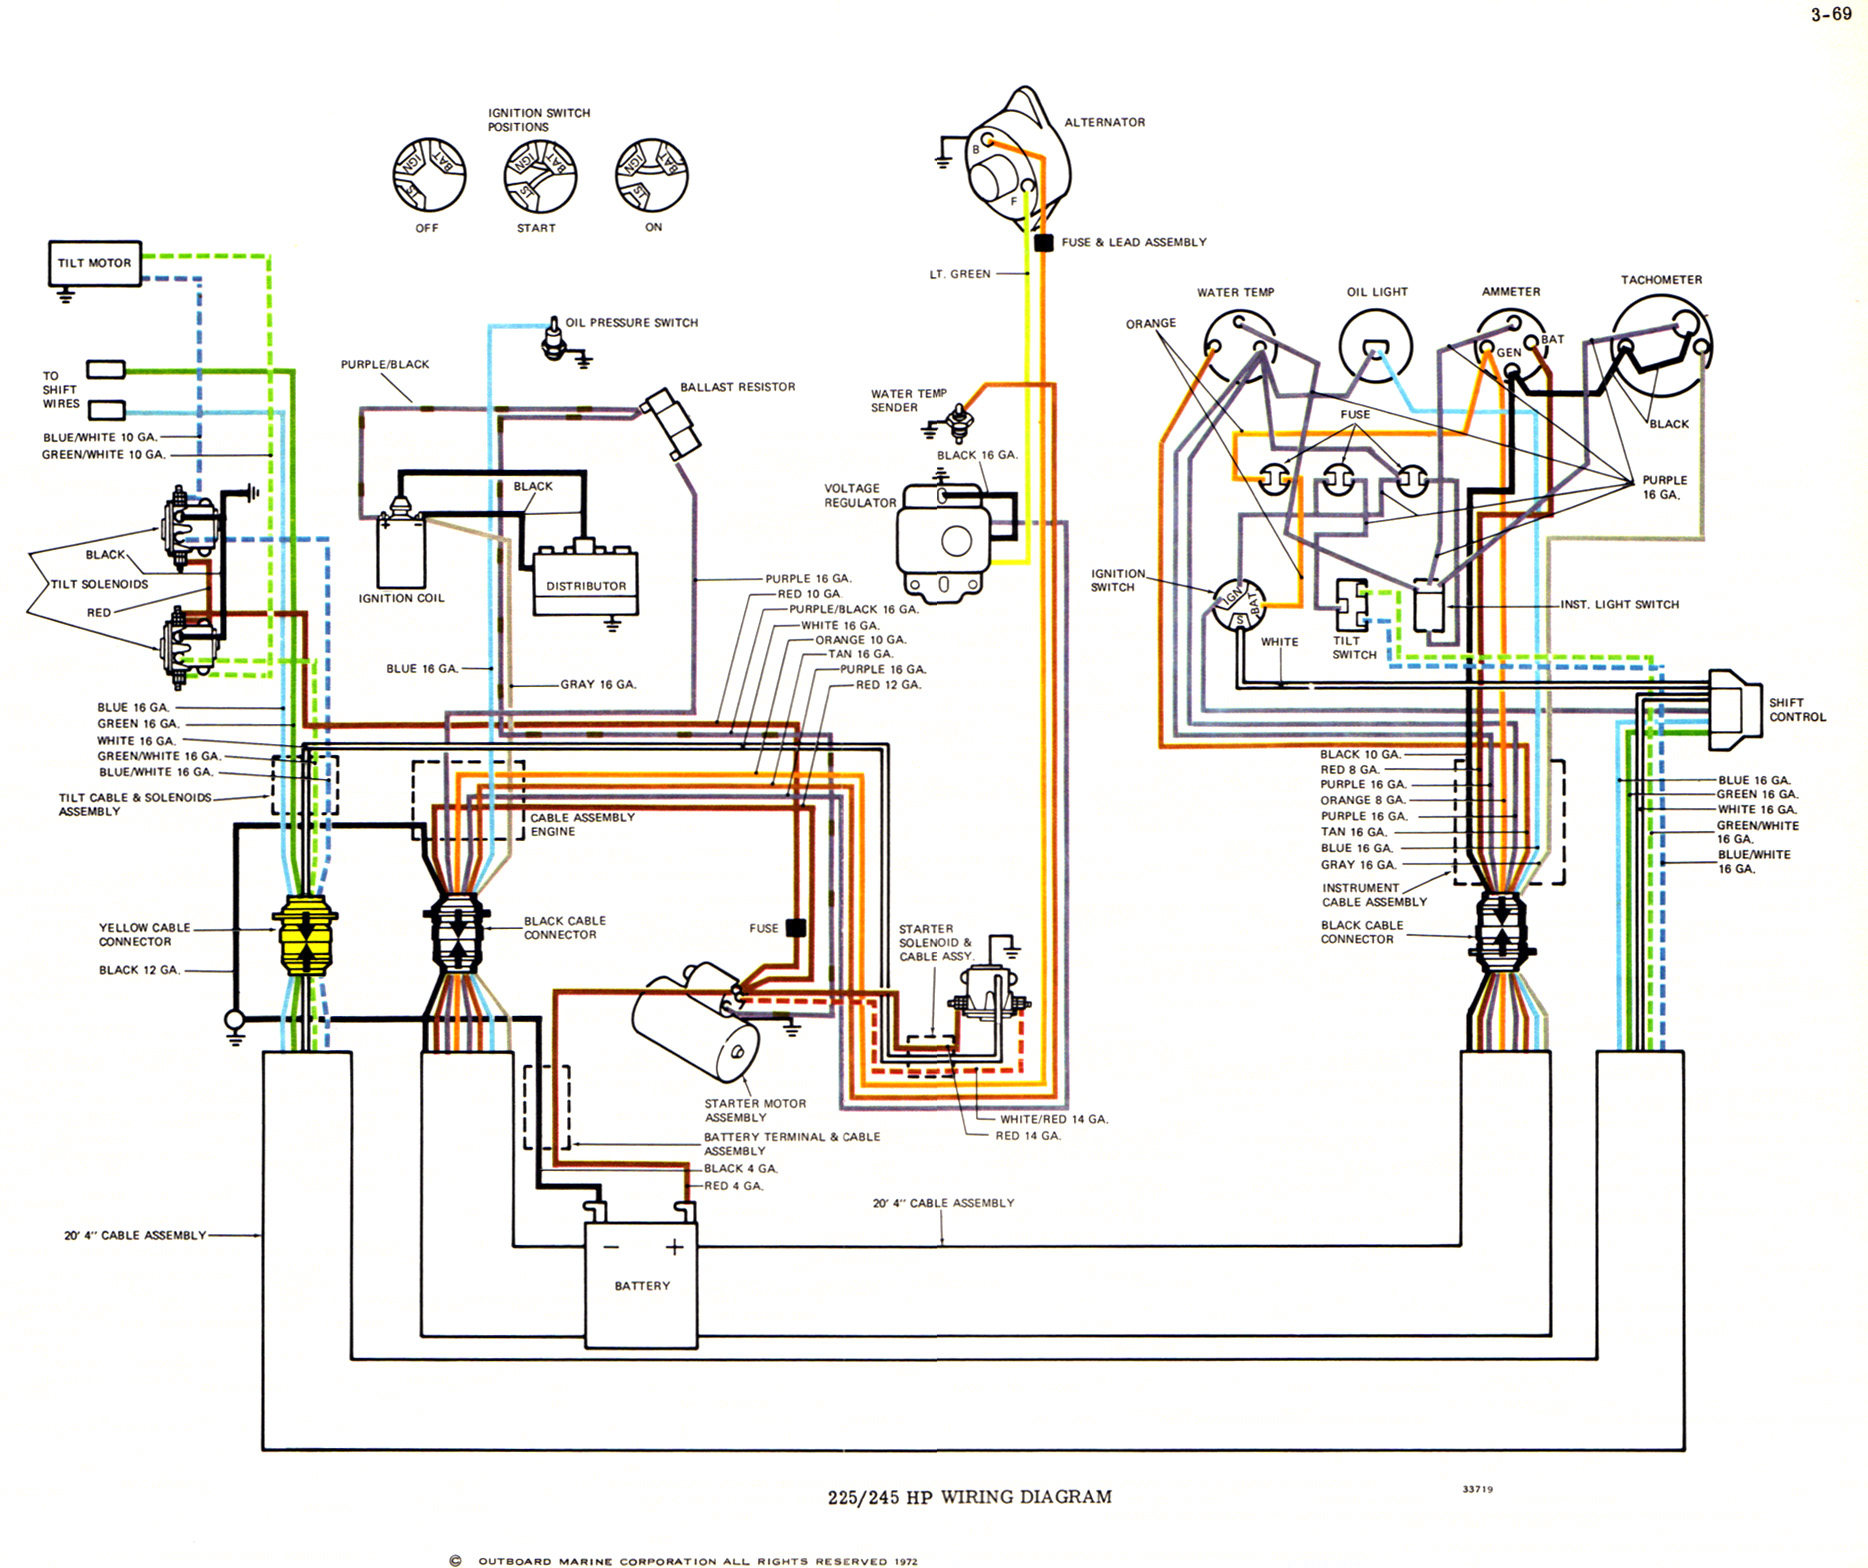 73_OMC_V8_all_big evinrude boats wiring � 2004 lee k shuster delco electric motor wiring diagram at bayanpartner.co